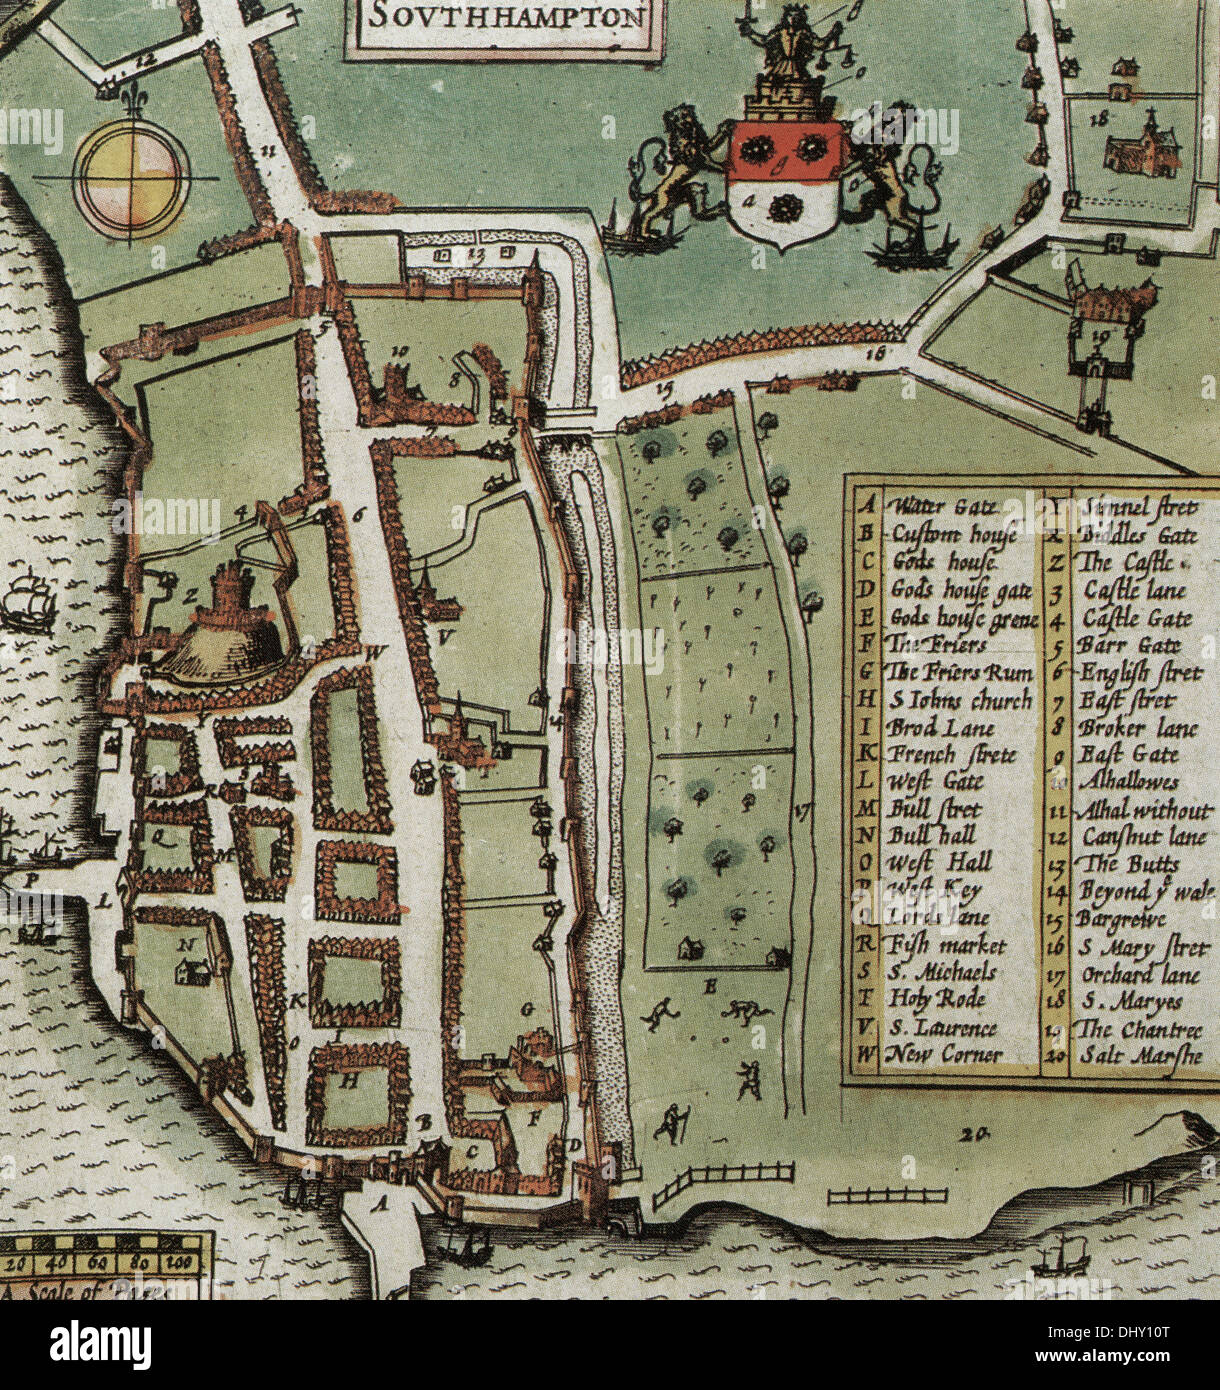 Old map of Southampton England by John Speed 1611 Stock Photo